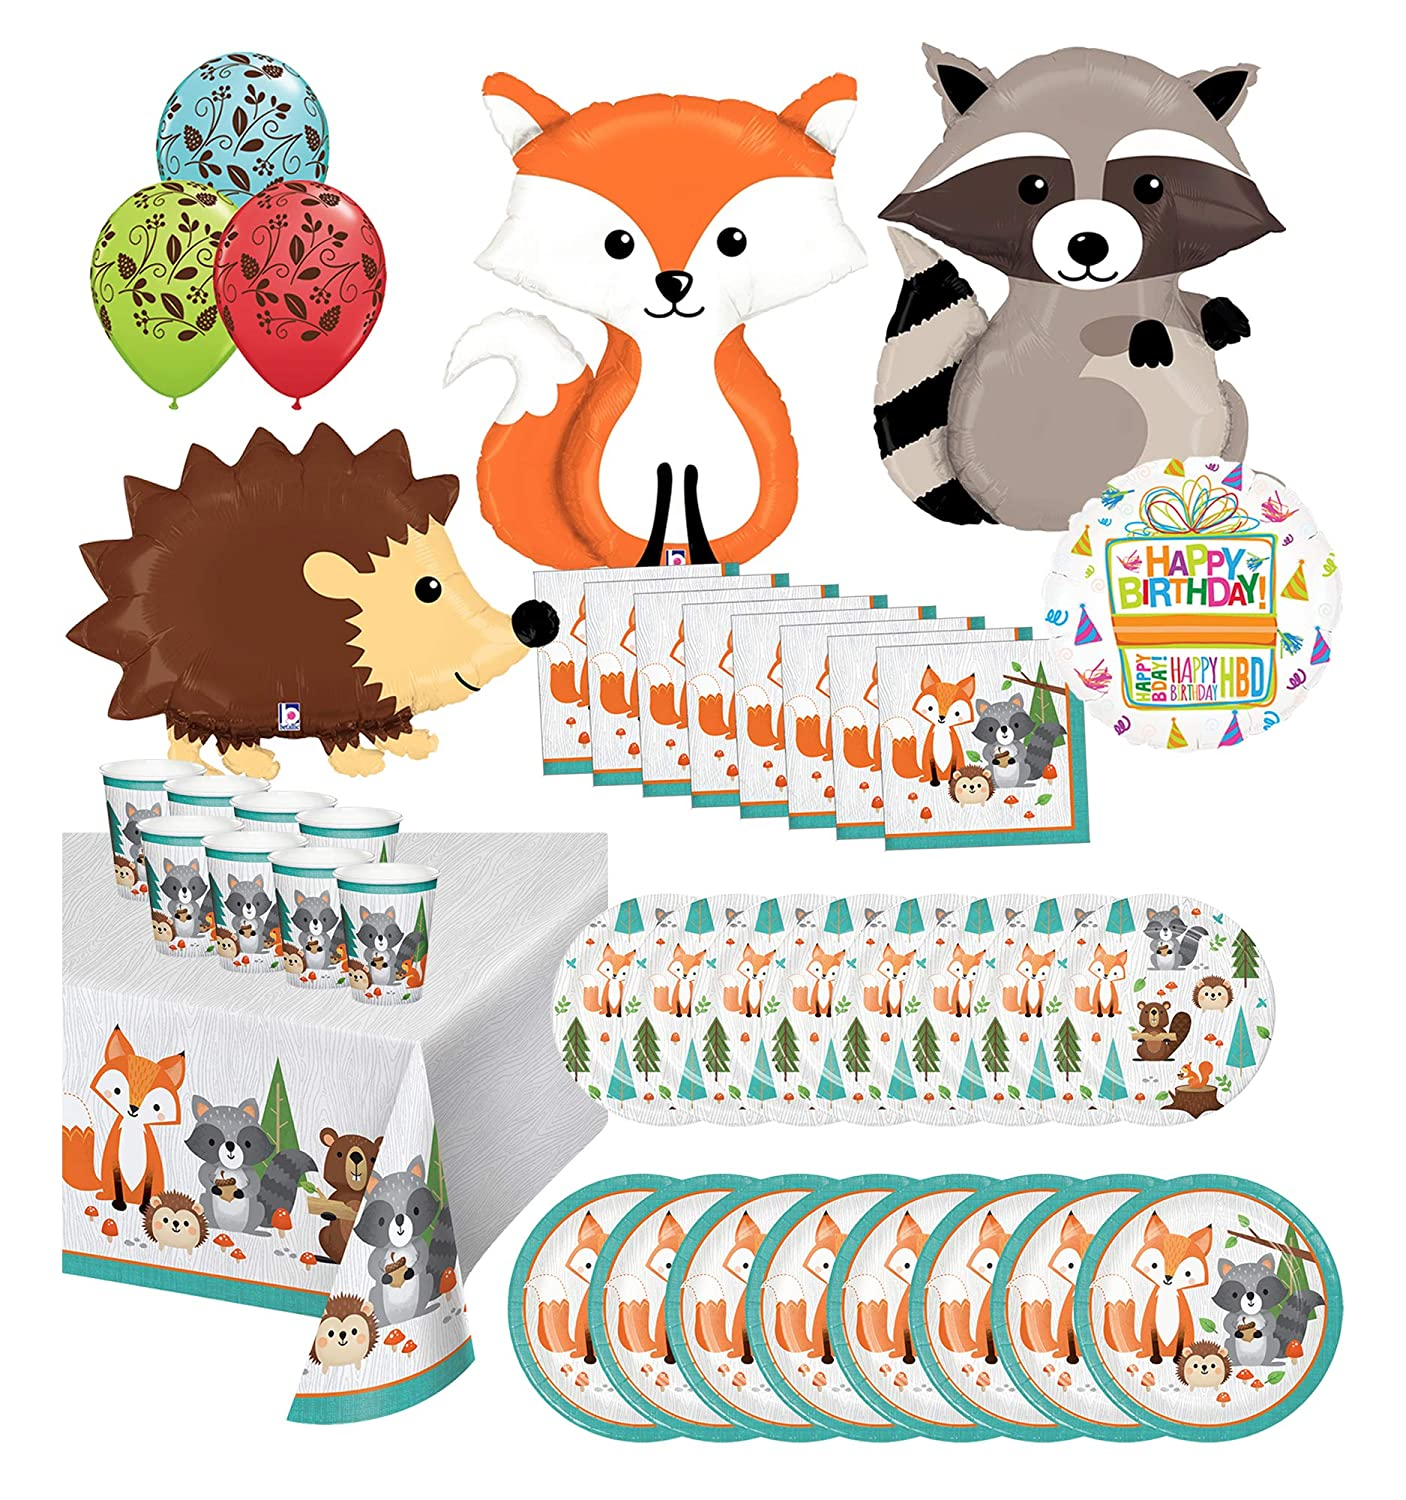 Mayflower Products Woodland Creatures Birthday Party Supplies 8 Guest Dining Decoration Kit and 3 Critters Balloon Bouquet (Fox, Hedgehog, Raccoon)